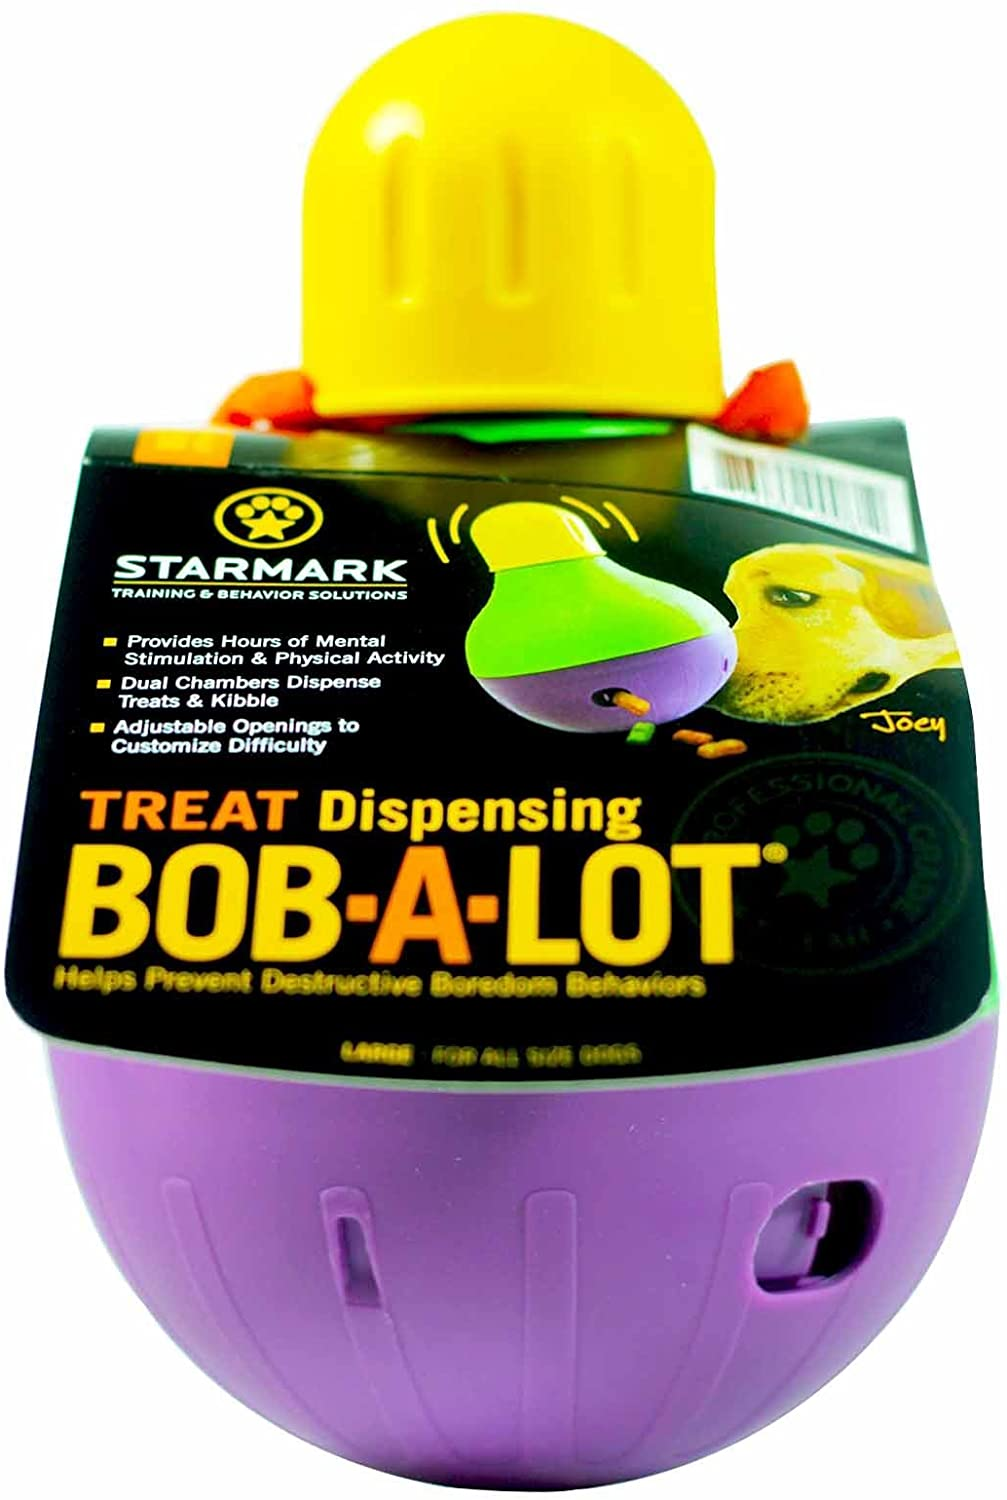 Bob A Lot food dispensing toy for dogs